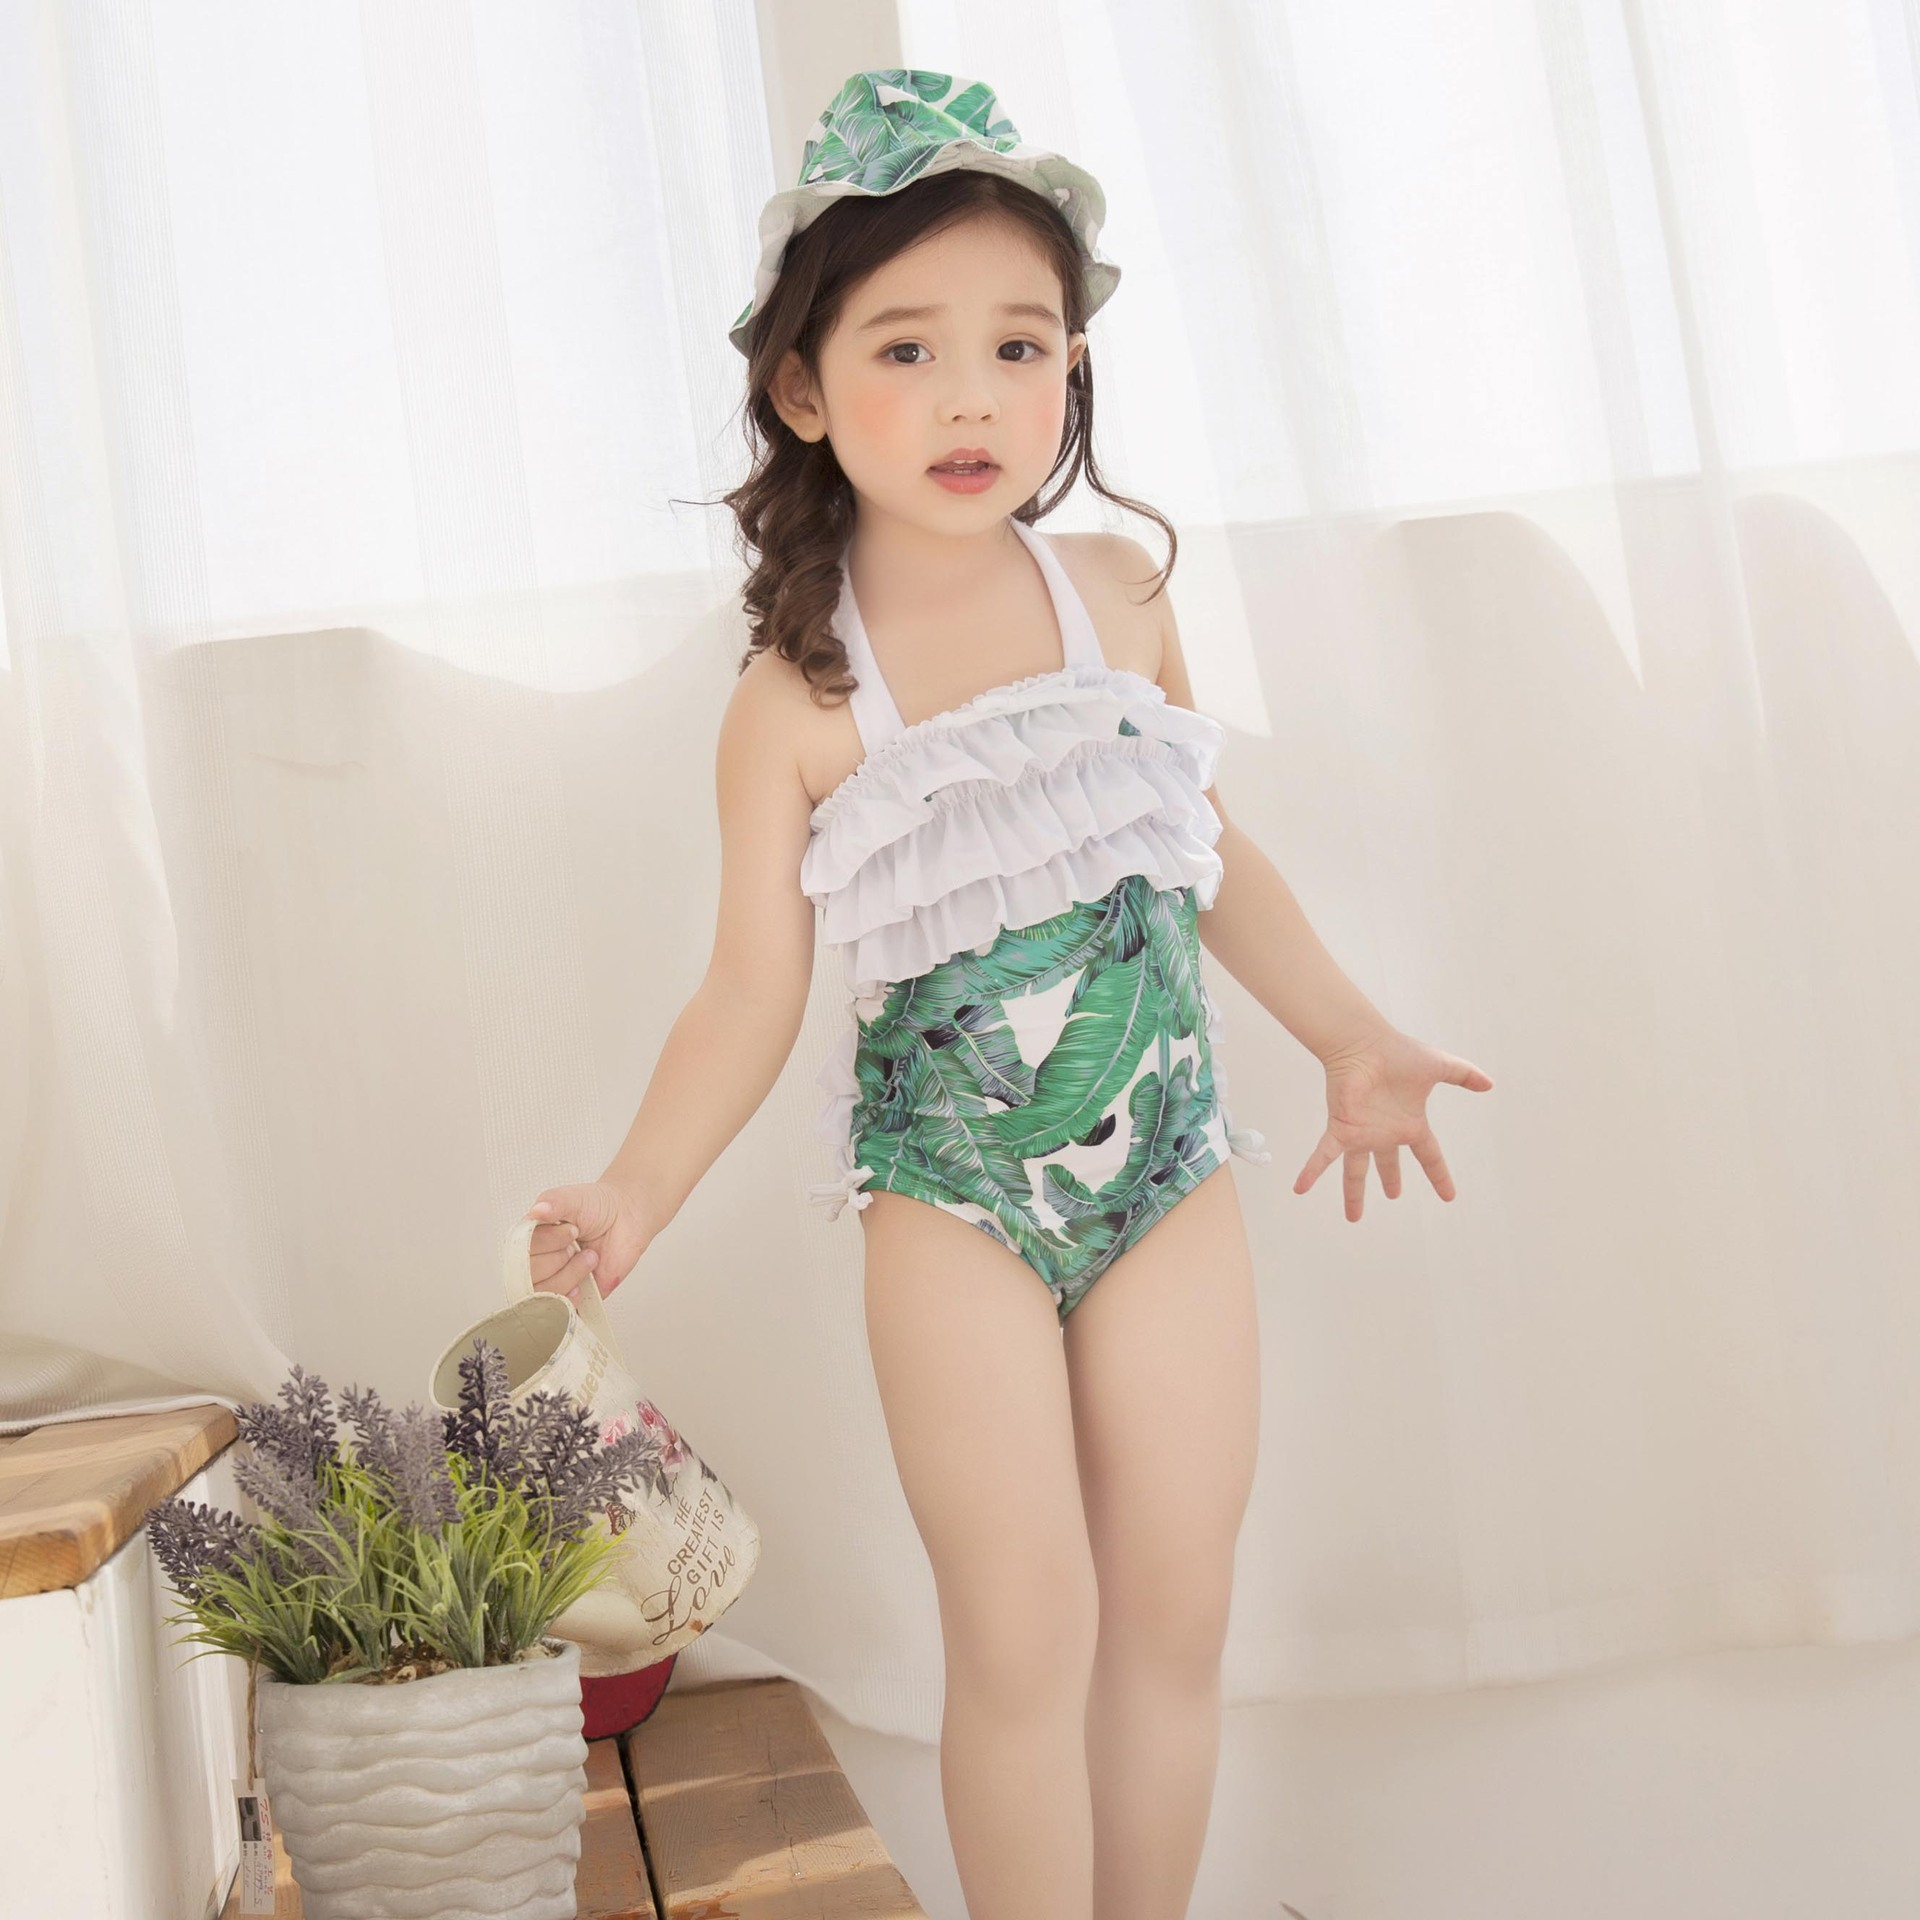 цены  Kids Swimming Suits For Girls One Piece Swimsuit Swimwear Children 2017, New Green Printing One-Piece Retro Baby Biquini